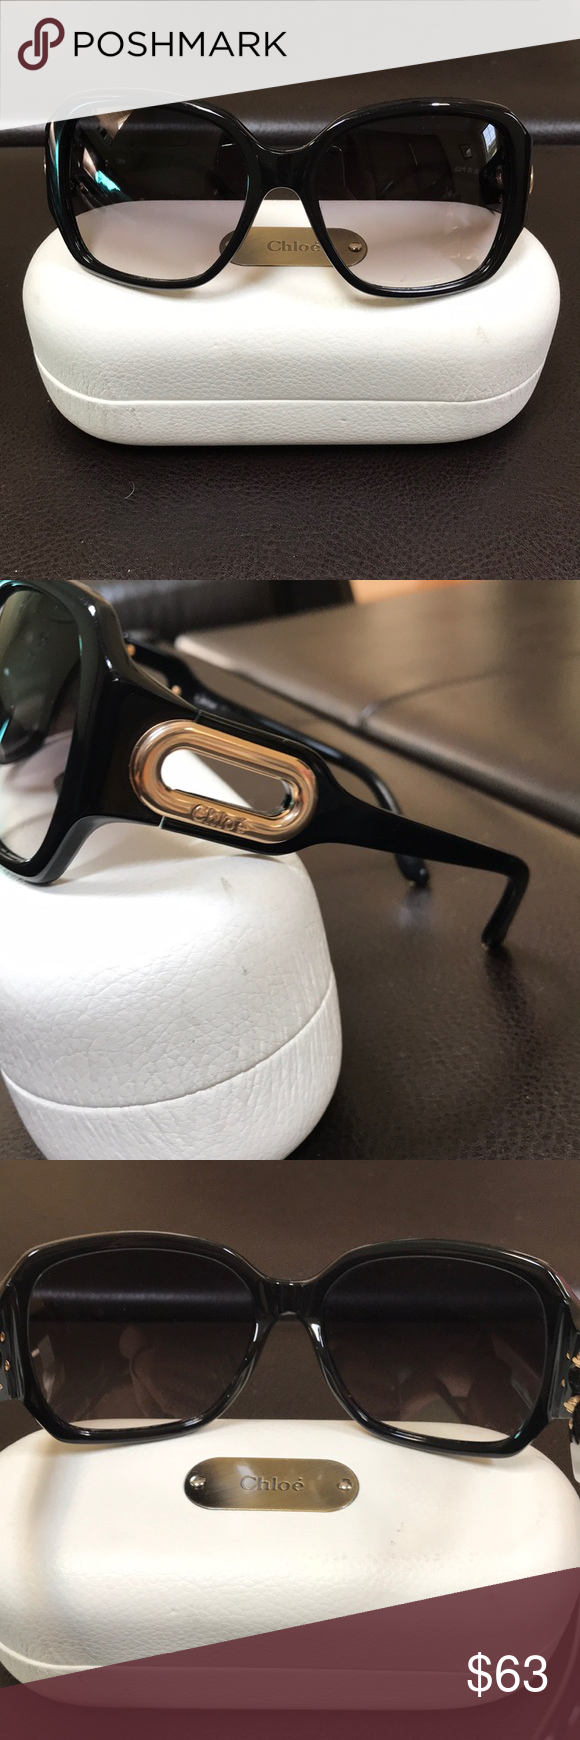 f0eeaf64636 Black Authentic Chloe Sunglasses Black with gold hardware oversized square  authentic Chloe sunglasses